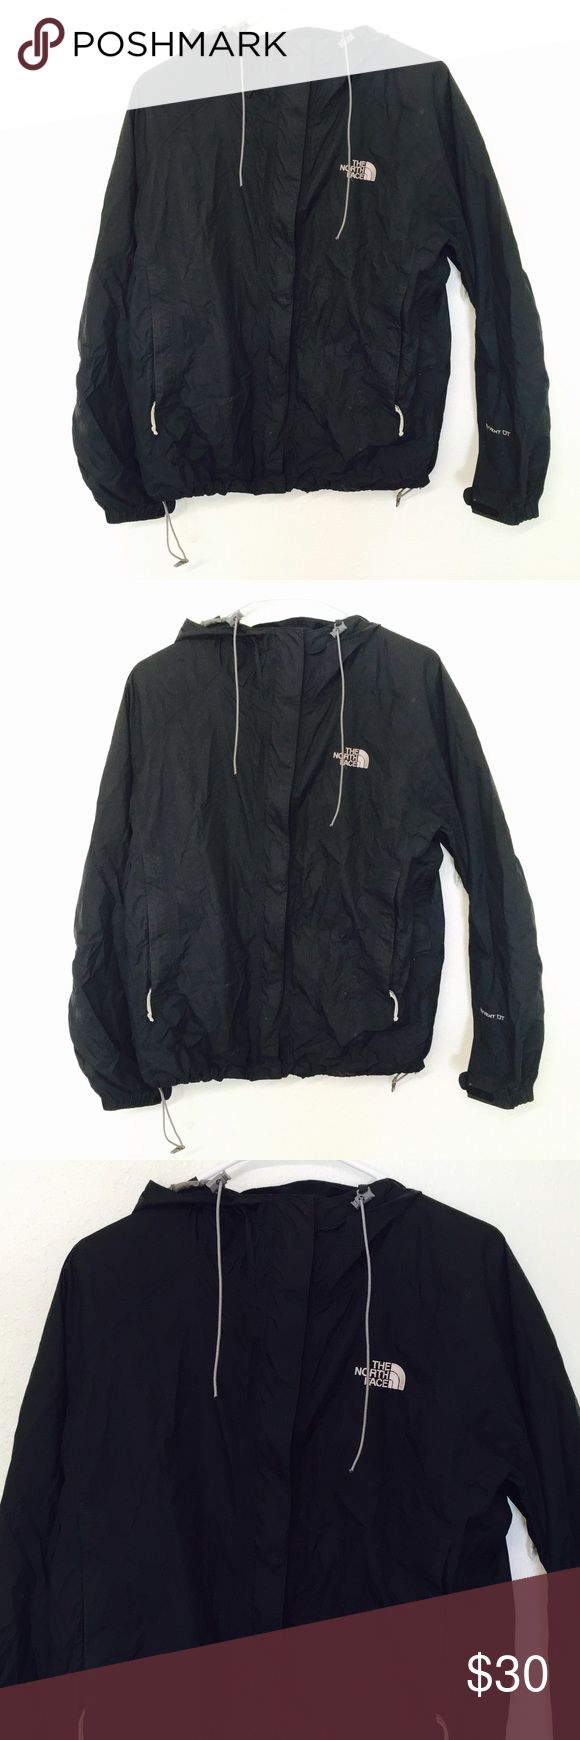 The North Face Black Wind Breaker Jacket! Size large! Interior is crackaling but the exterior is in excellent condition! North Face Jackets & Coats